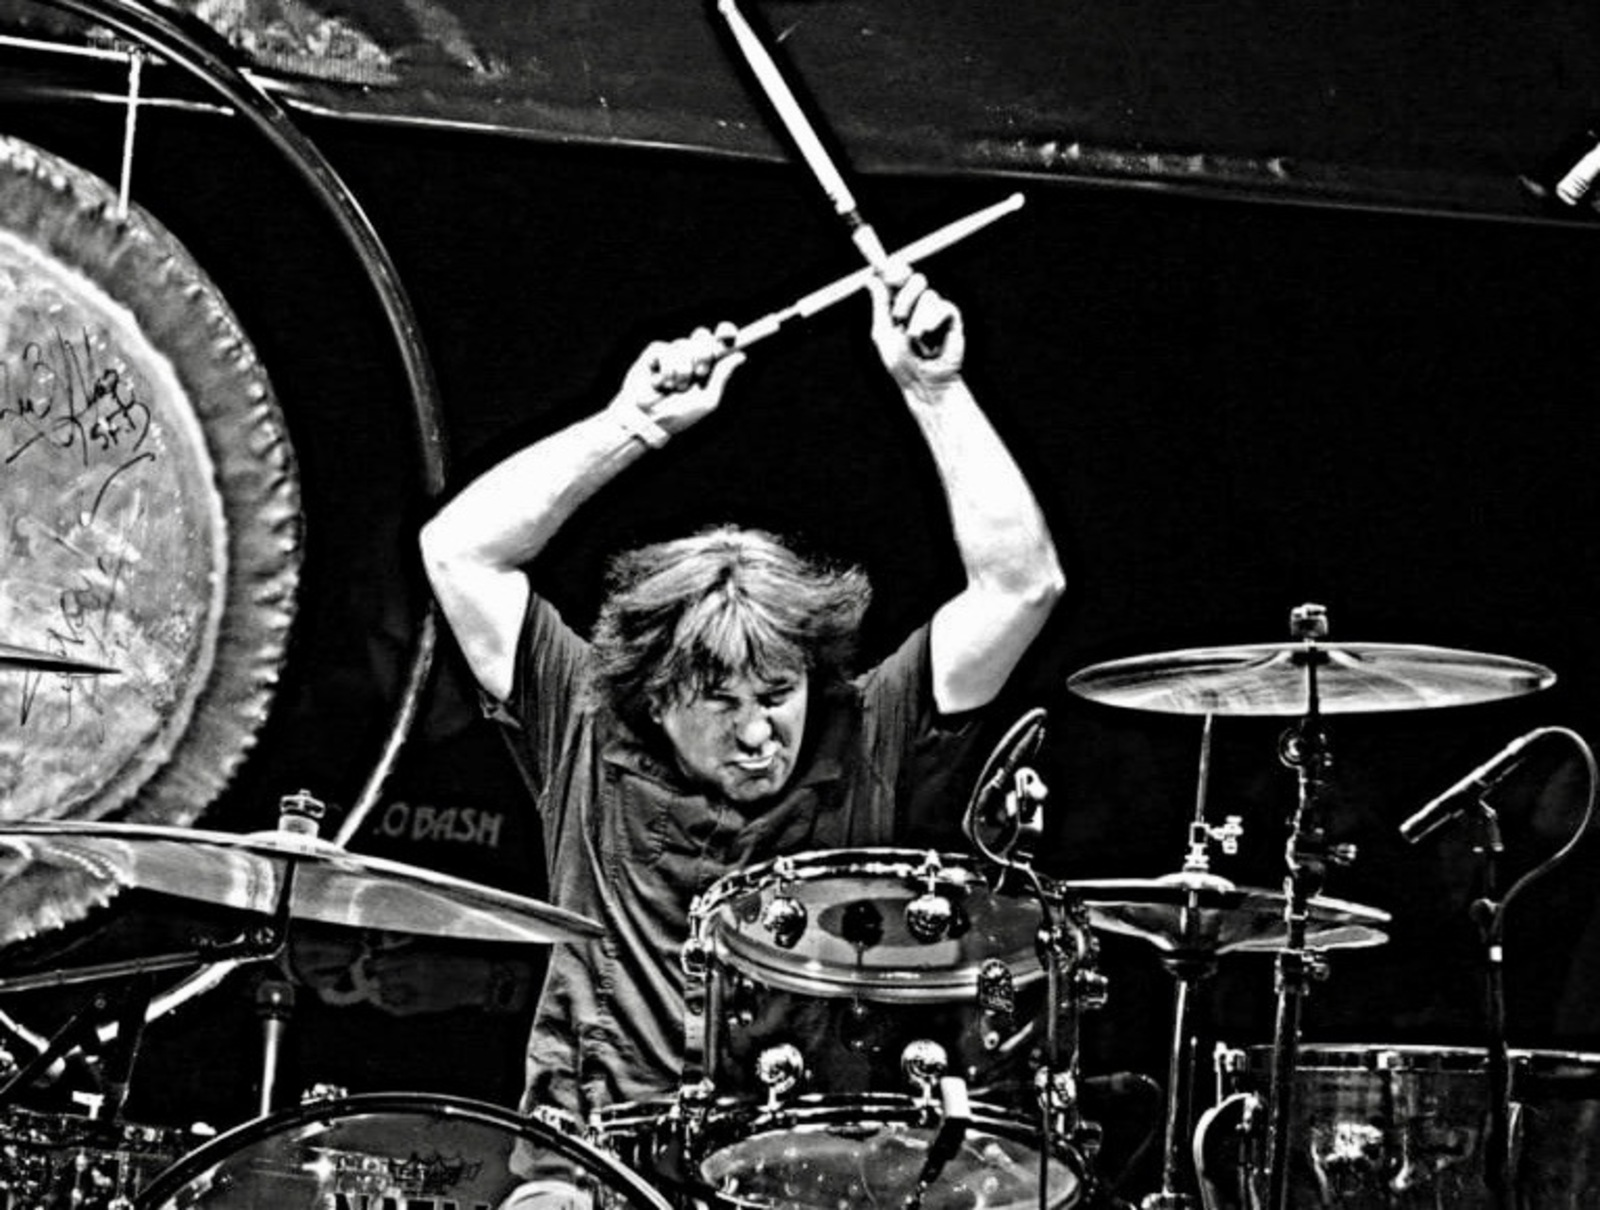 Legendary rock drummer Simon Wright